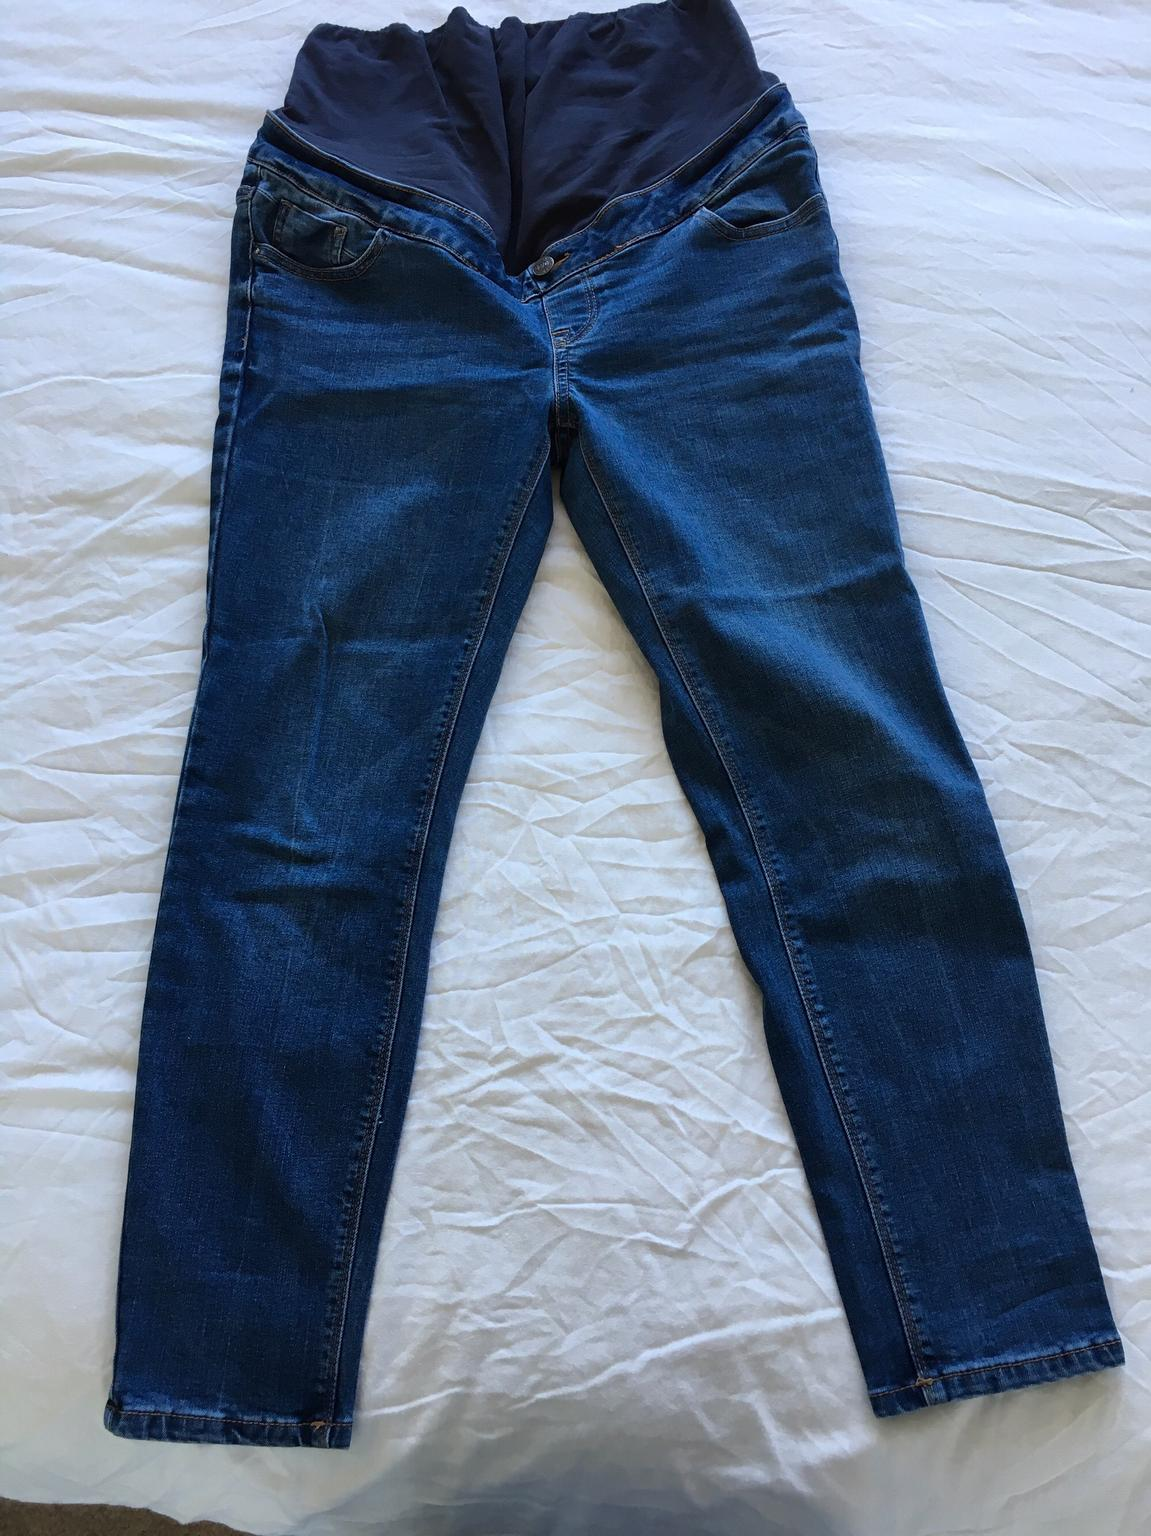 ce2f6b69594c5 Maternity jeans - new look size 10 in NN29 Wollaston for £5.00 for sale -  Shpock